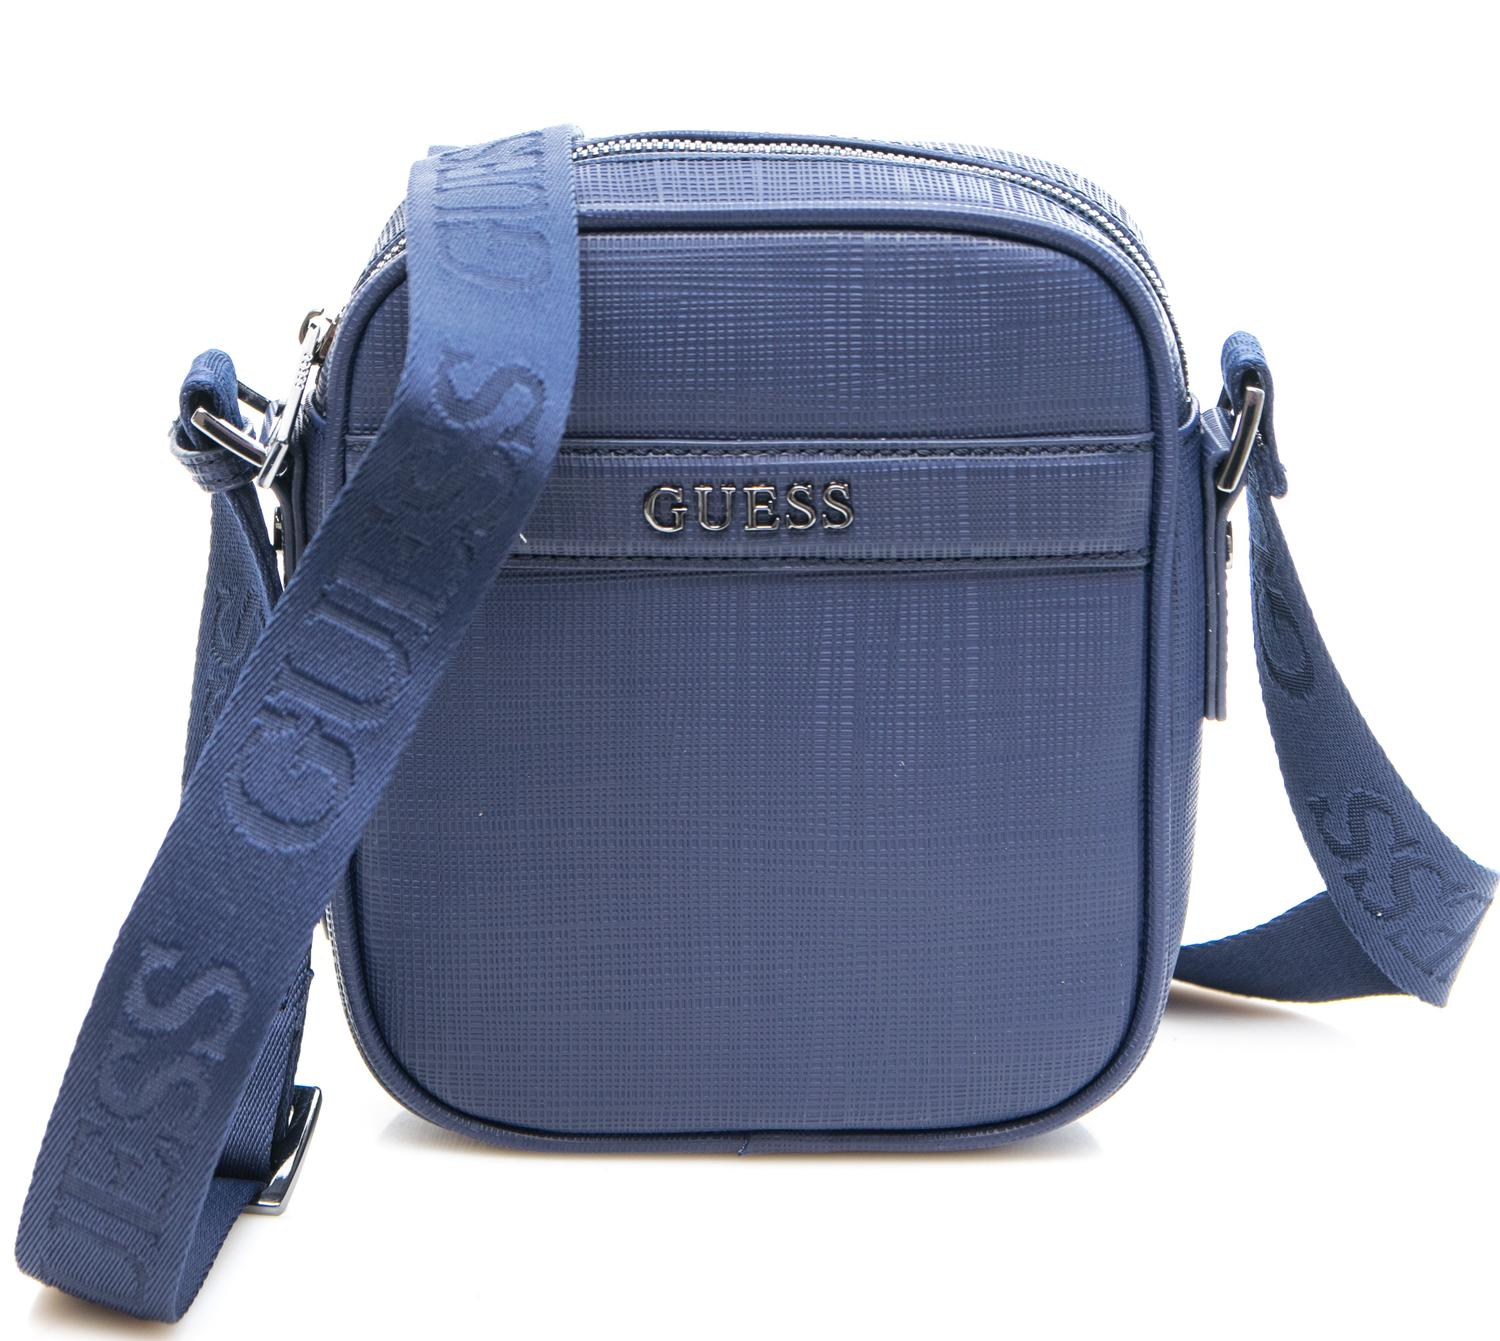 Borsello Guess Linea The Modern Blue - Acquista A Prezzi Outlet! b6471652dd1